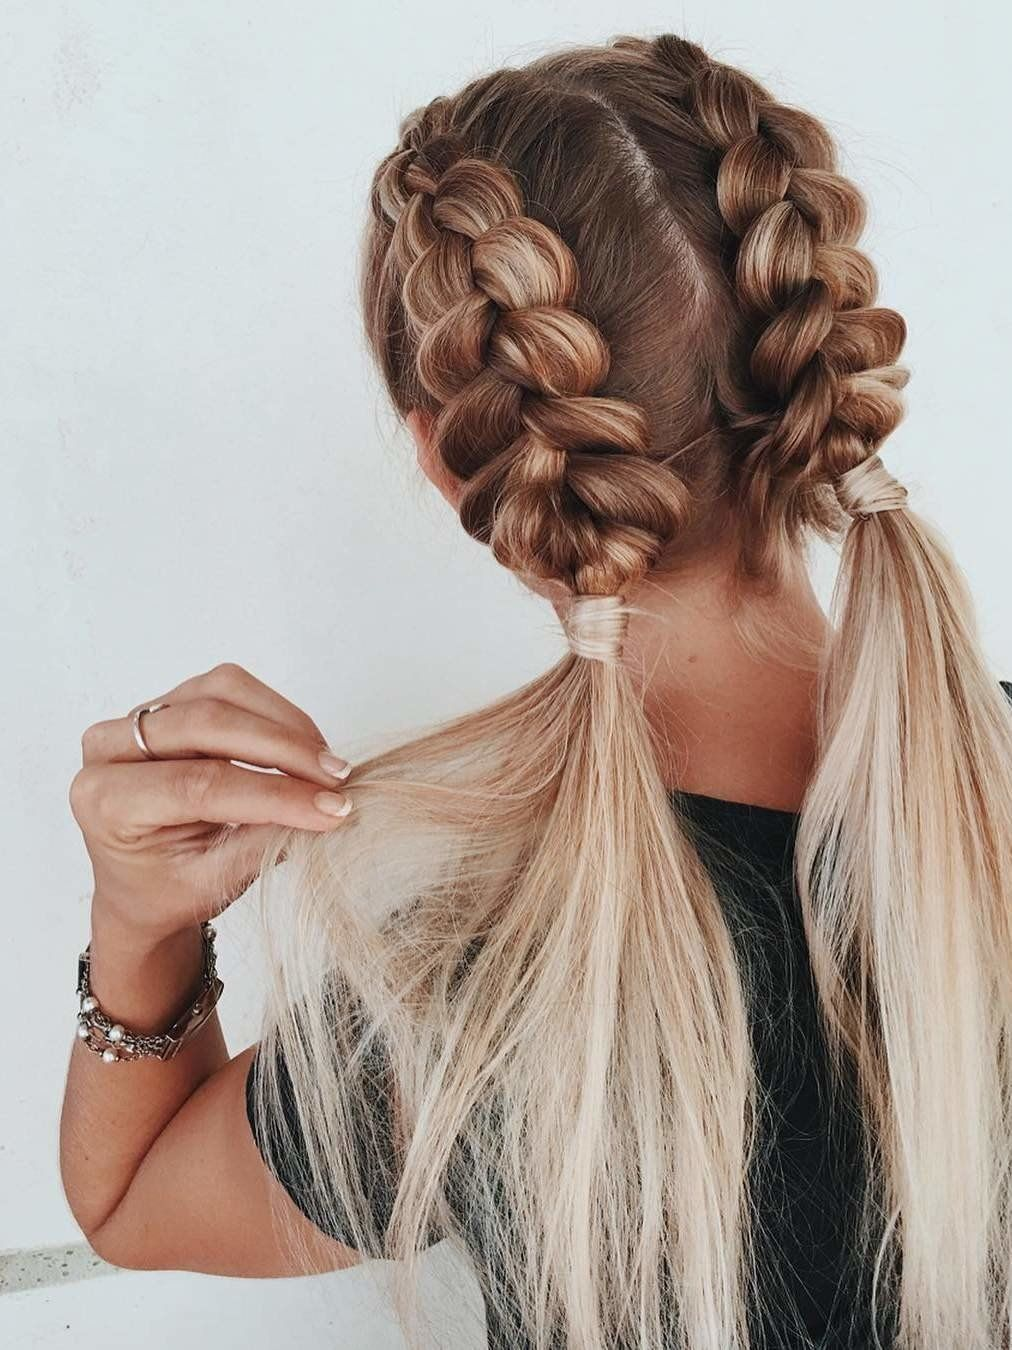 7 Braided Hairstyles That People Are Loving On Pinterest Braided Hairstyles Easy Cute Braided Hairstyles Fishtail Braid Hairstyles